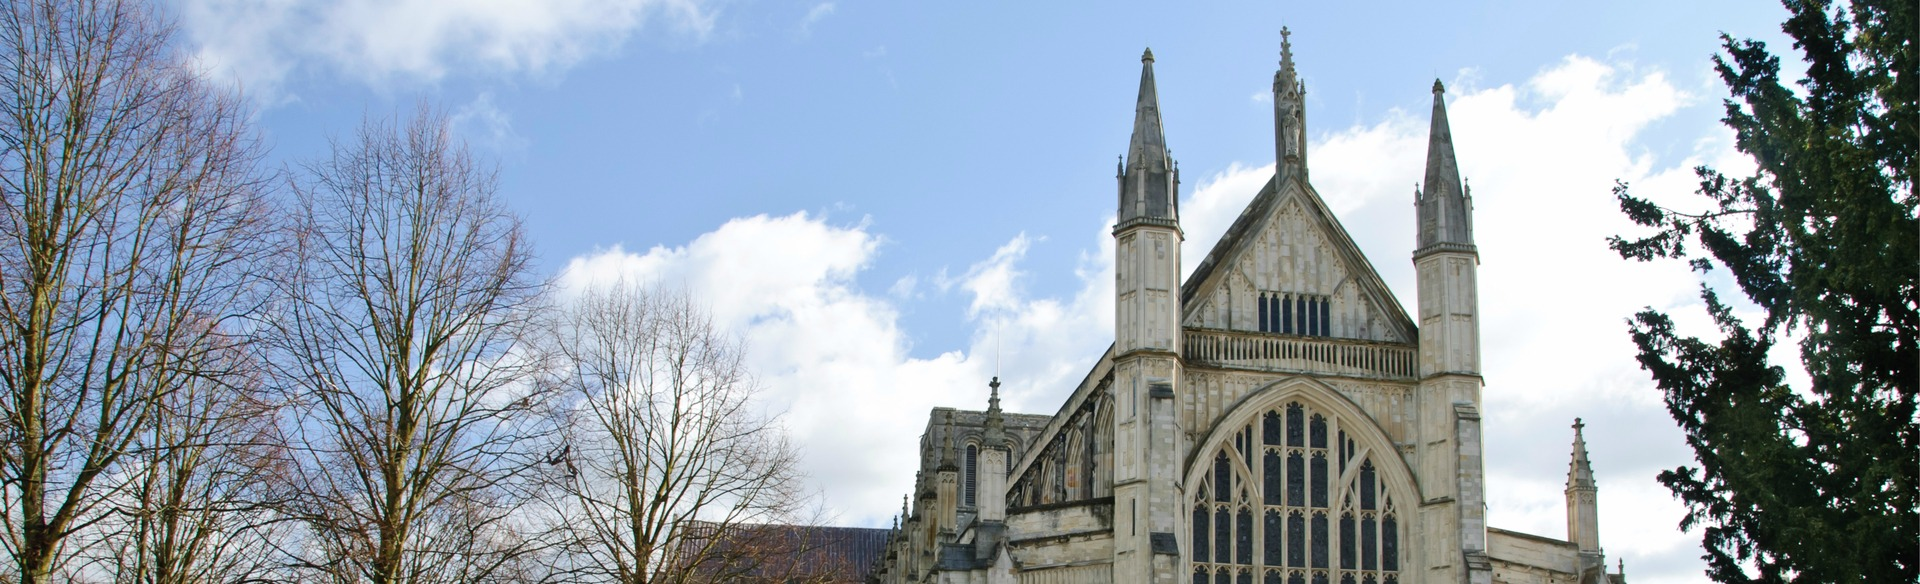 5 best english cathedrals